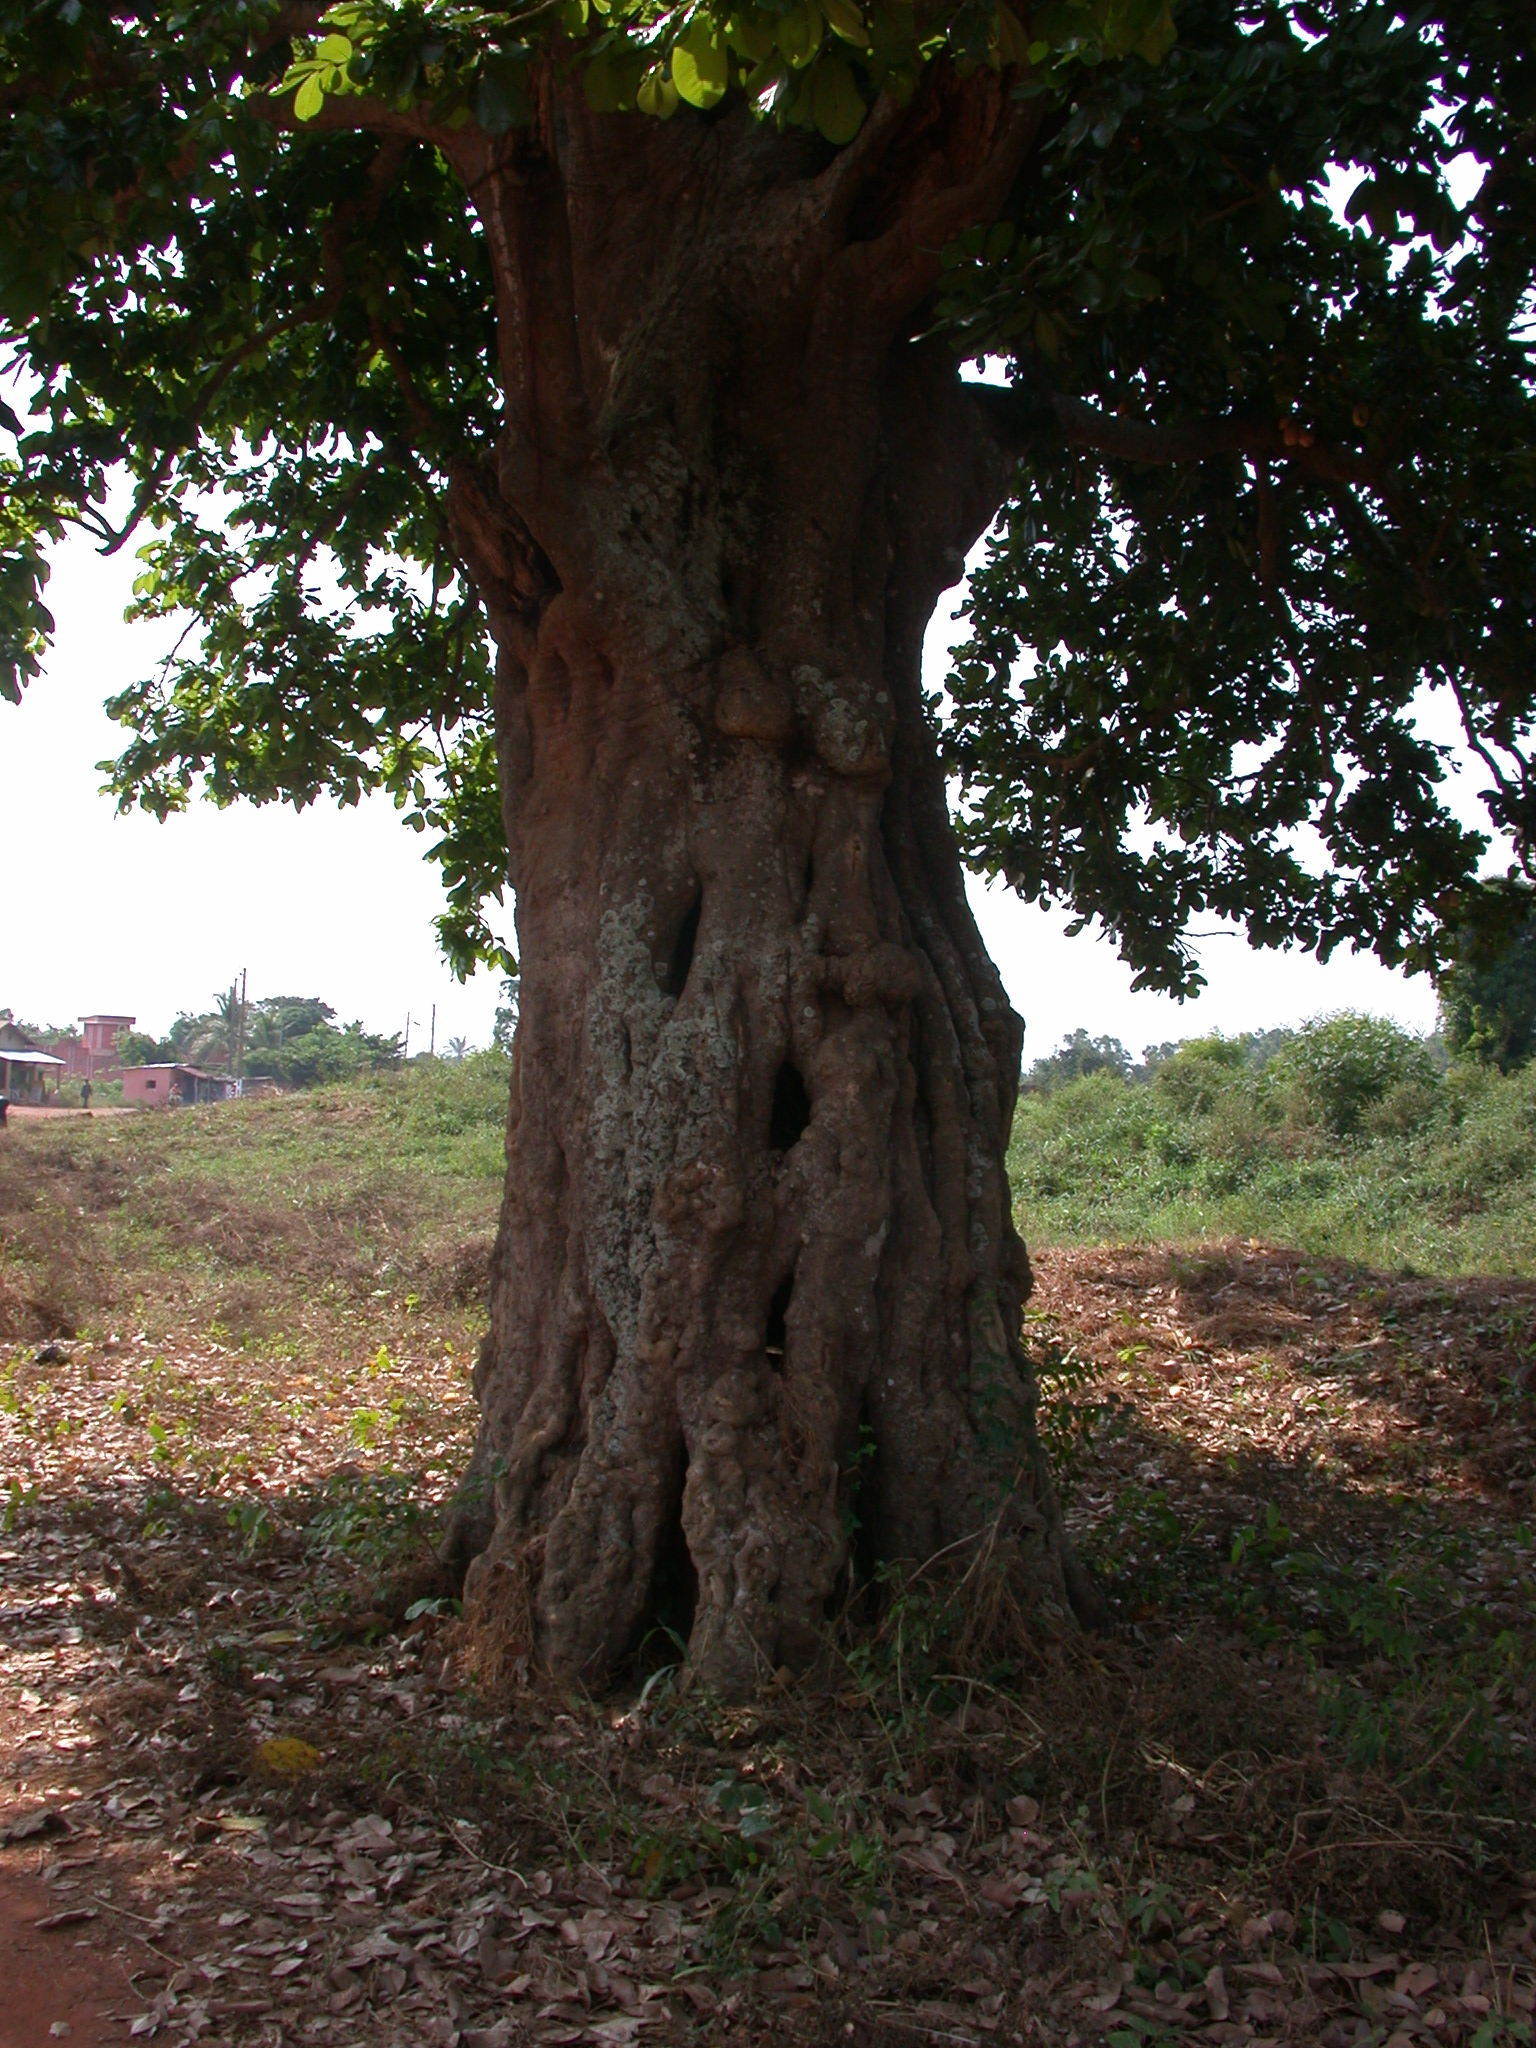 Gnarly Hollow Tree at Ruins of Palace of King Agadja, Abomey, Benin